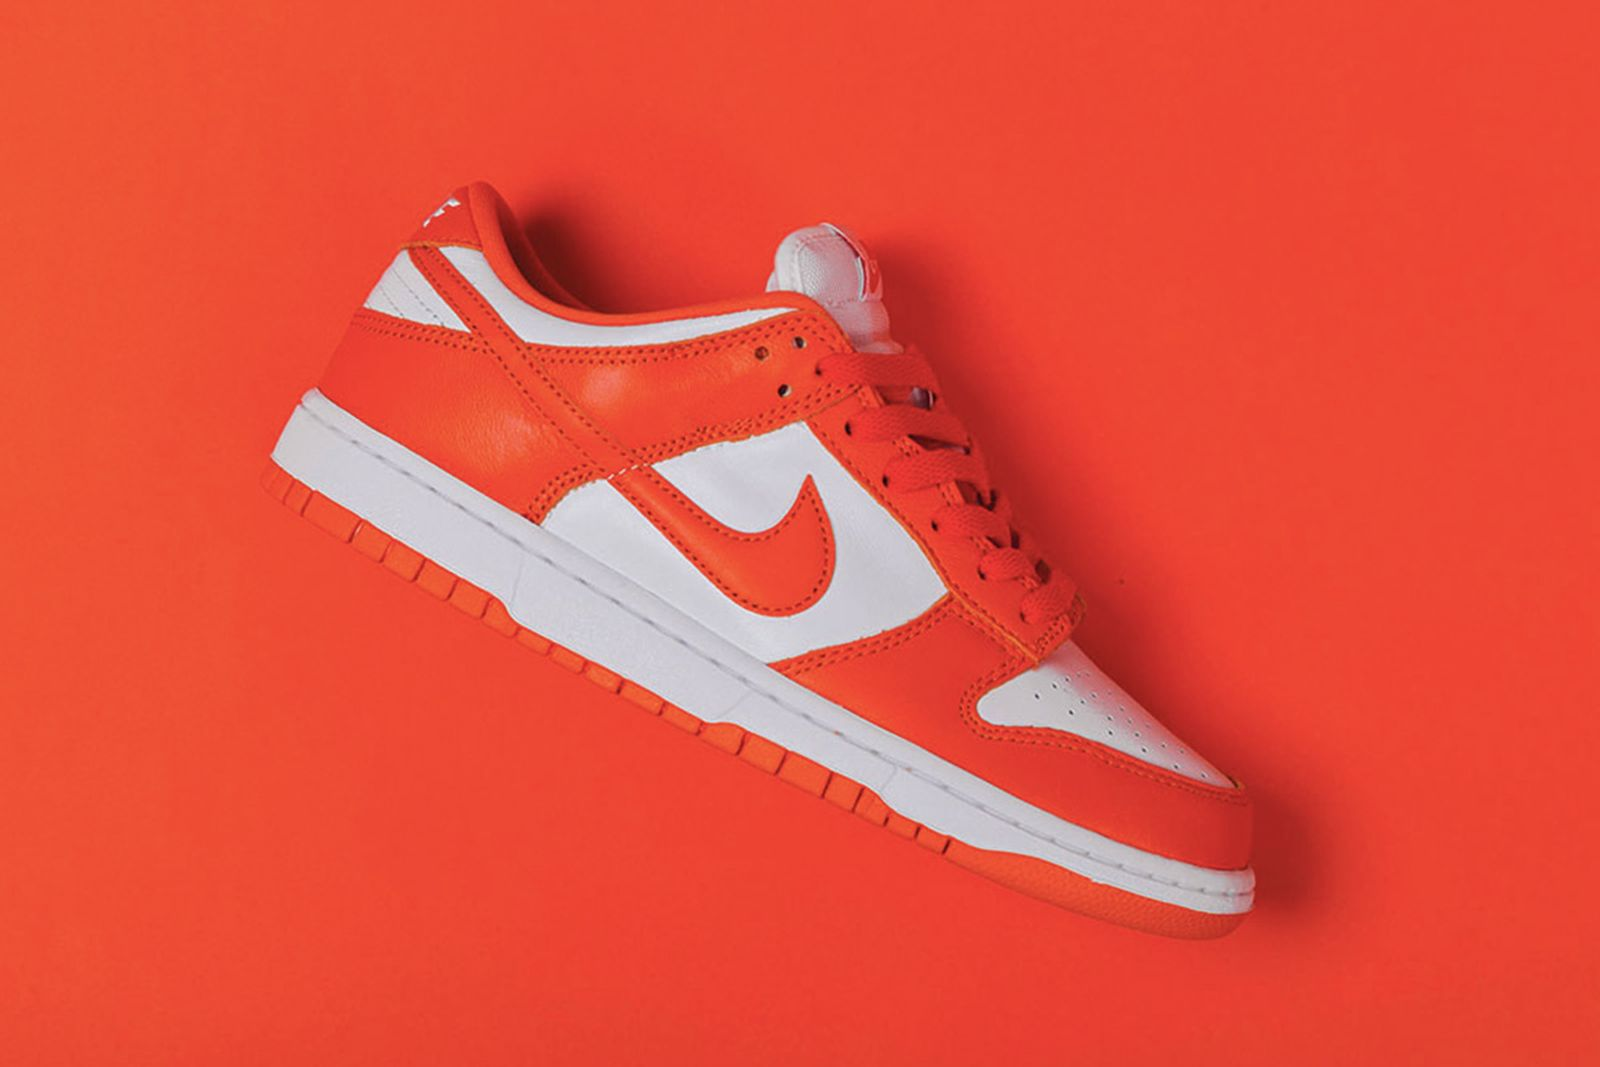 nike-dunk-low-syracuse-release-date-info-06